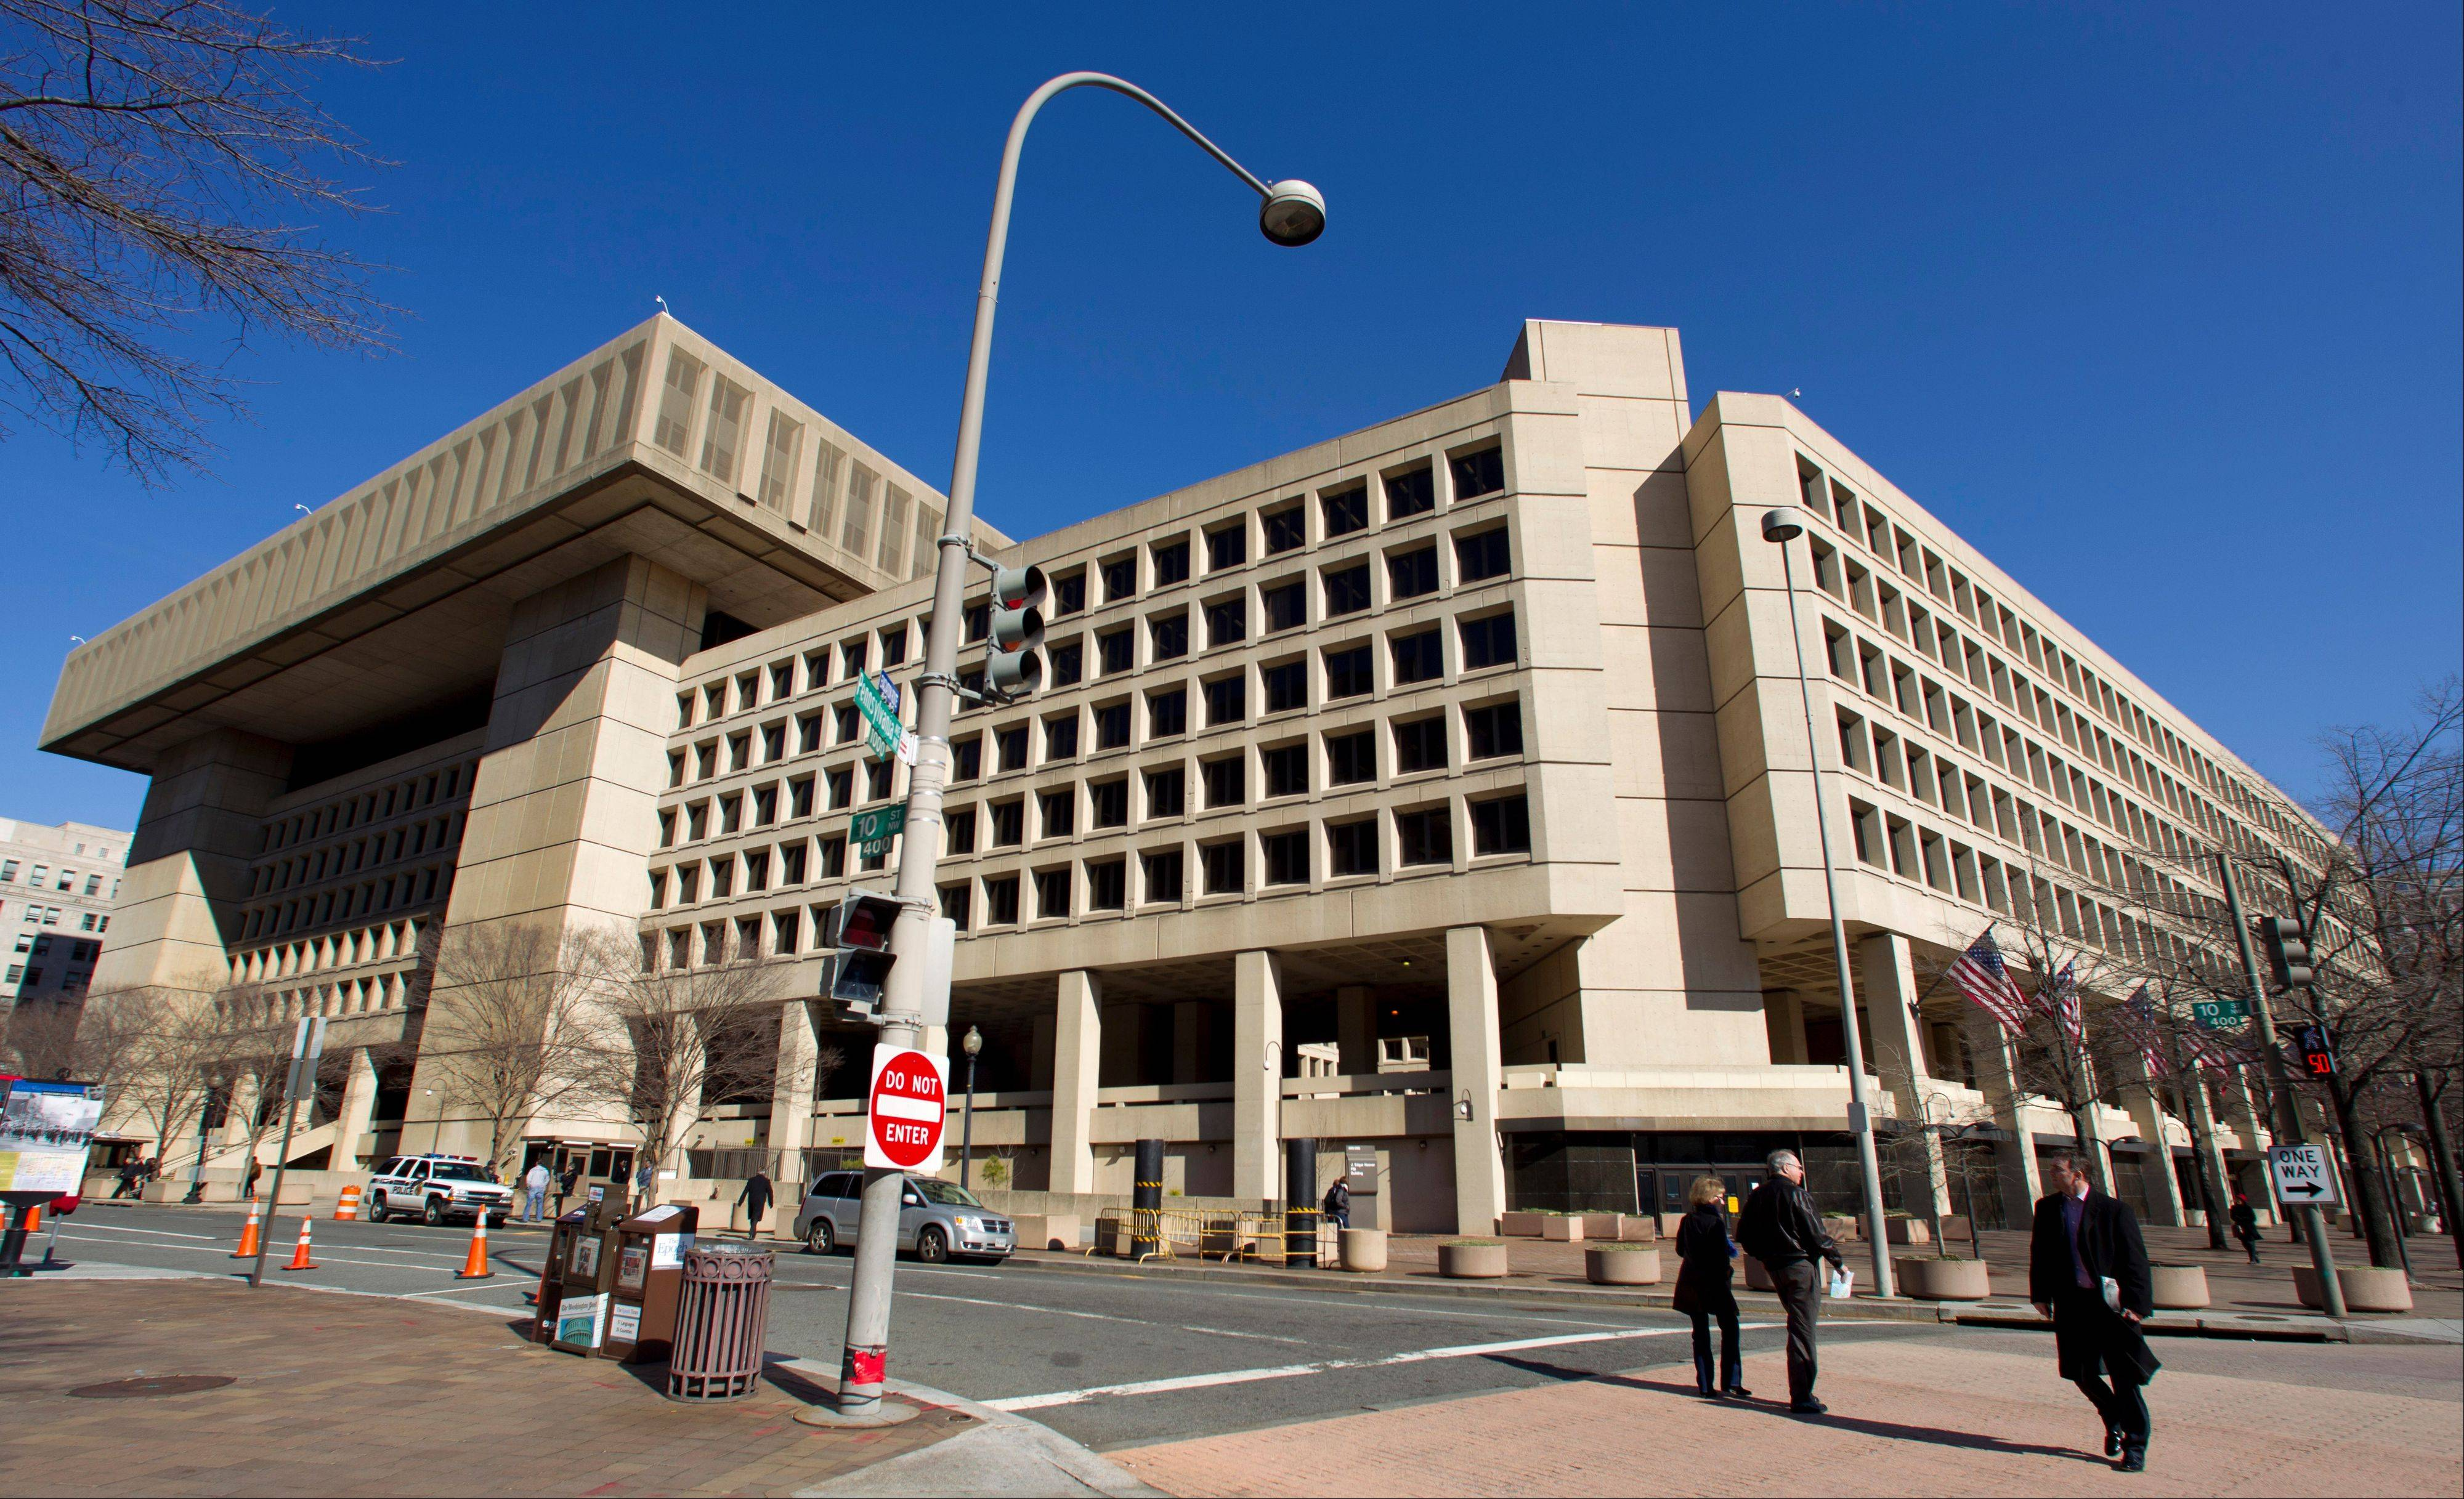 Just six blocks from the White House, the FBI's hulking headquarters overlooking Pennsylvania Avenue has long been the government building everyone loves to hate.